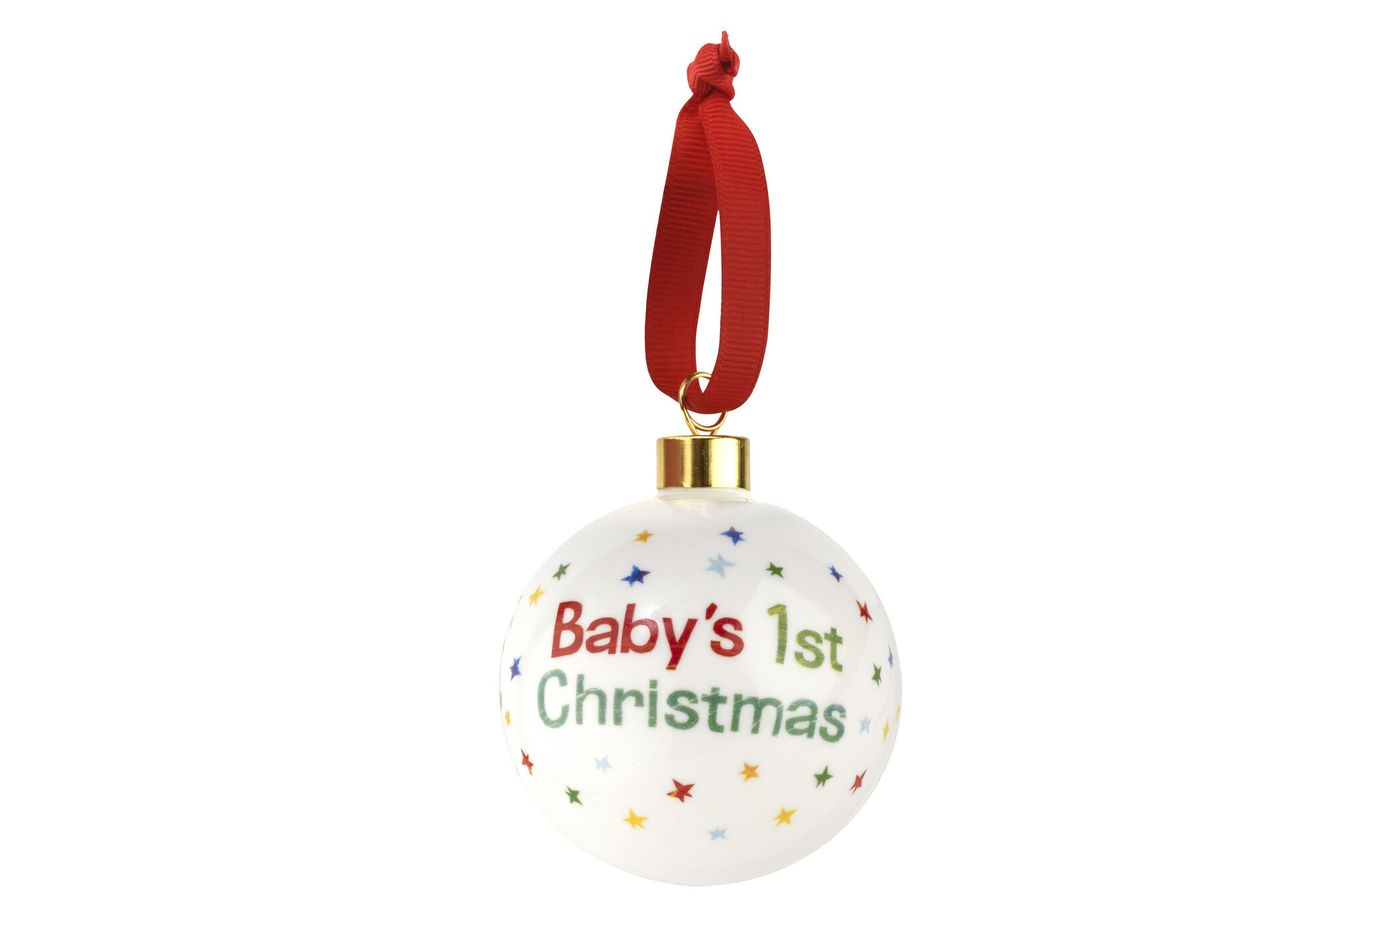 Portmeirion The Very Hungry Caterpillar by Eric Carle Bauble Baby 1st Xmas thumb 1